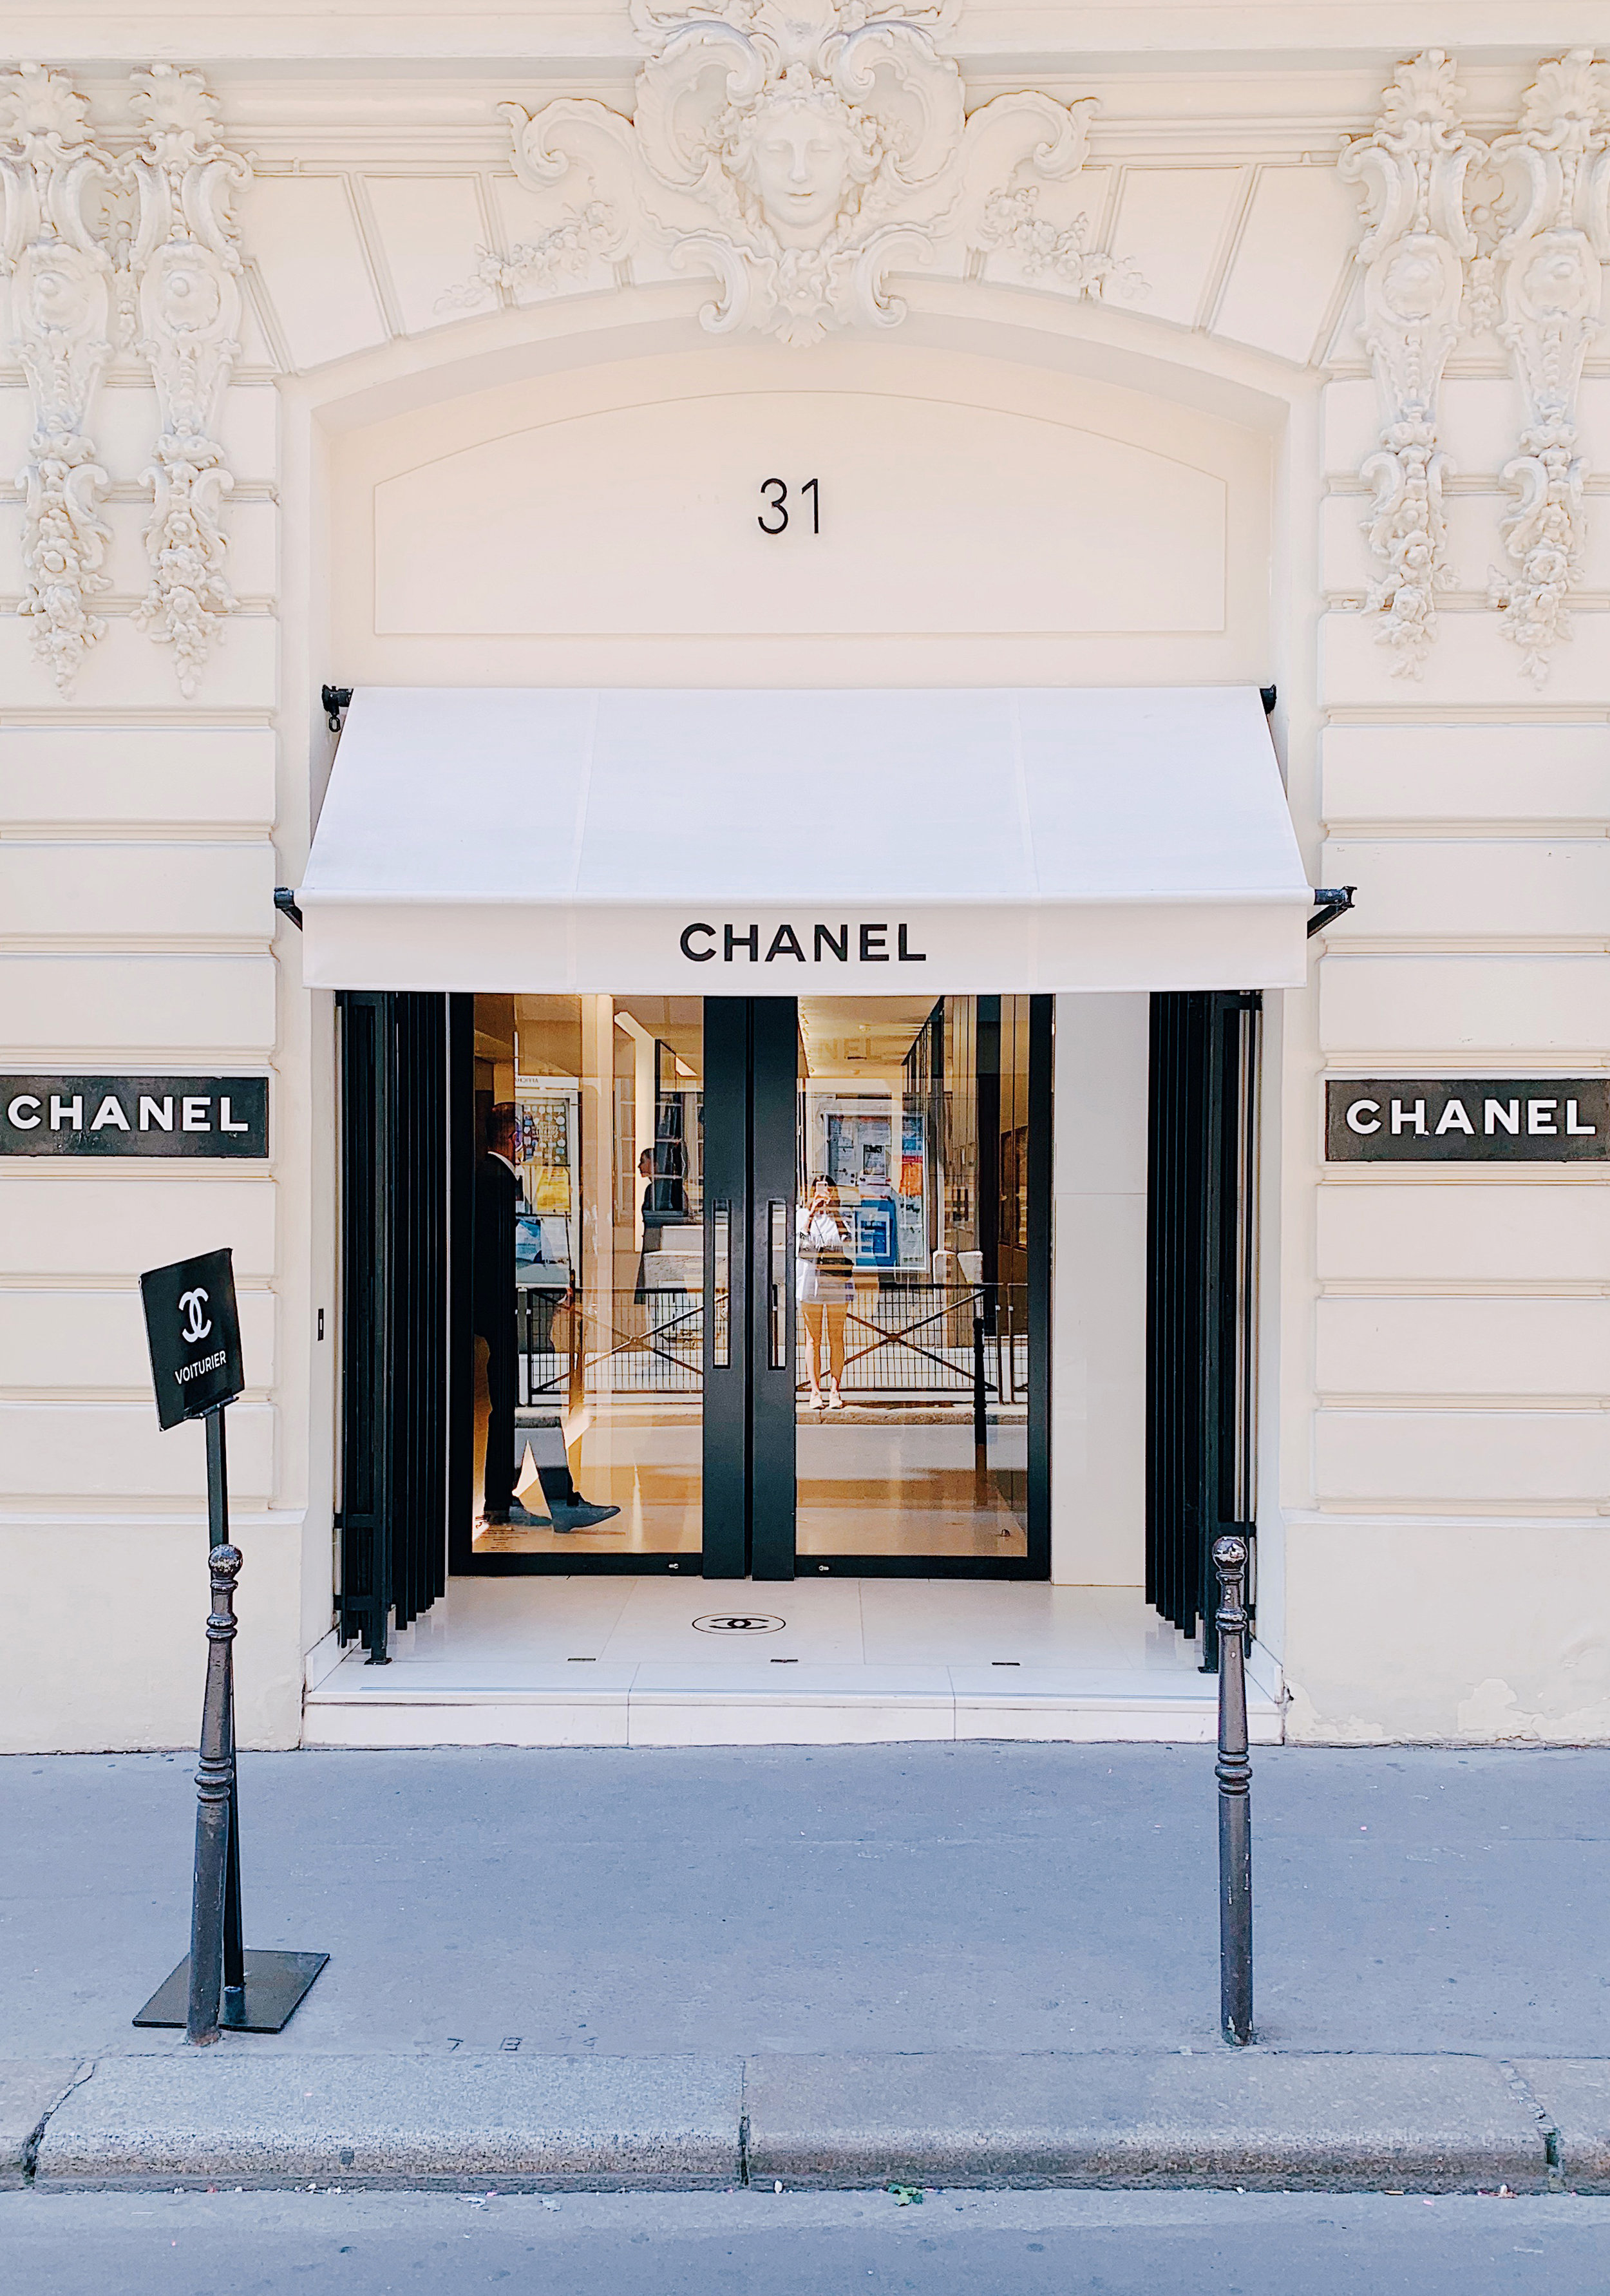 Paris 5 Chanel 31 Rue Cambon.jpg